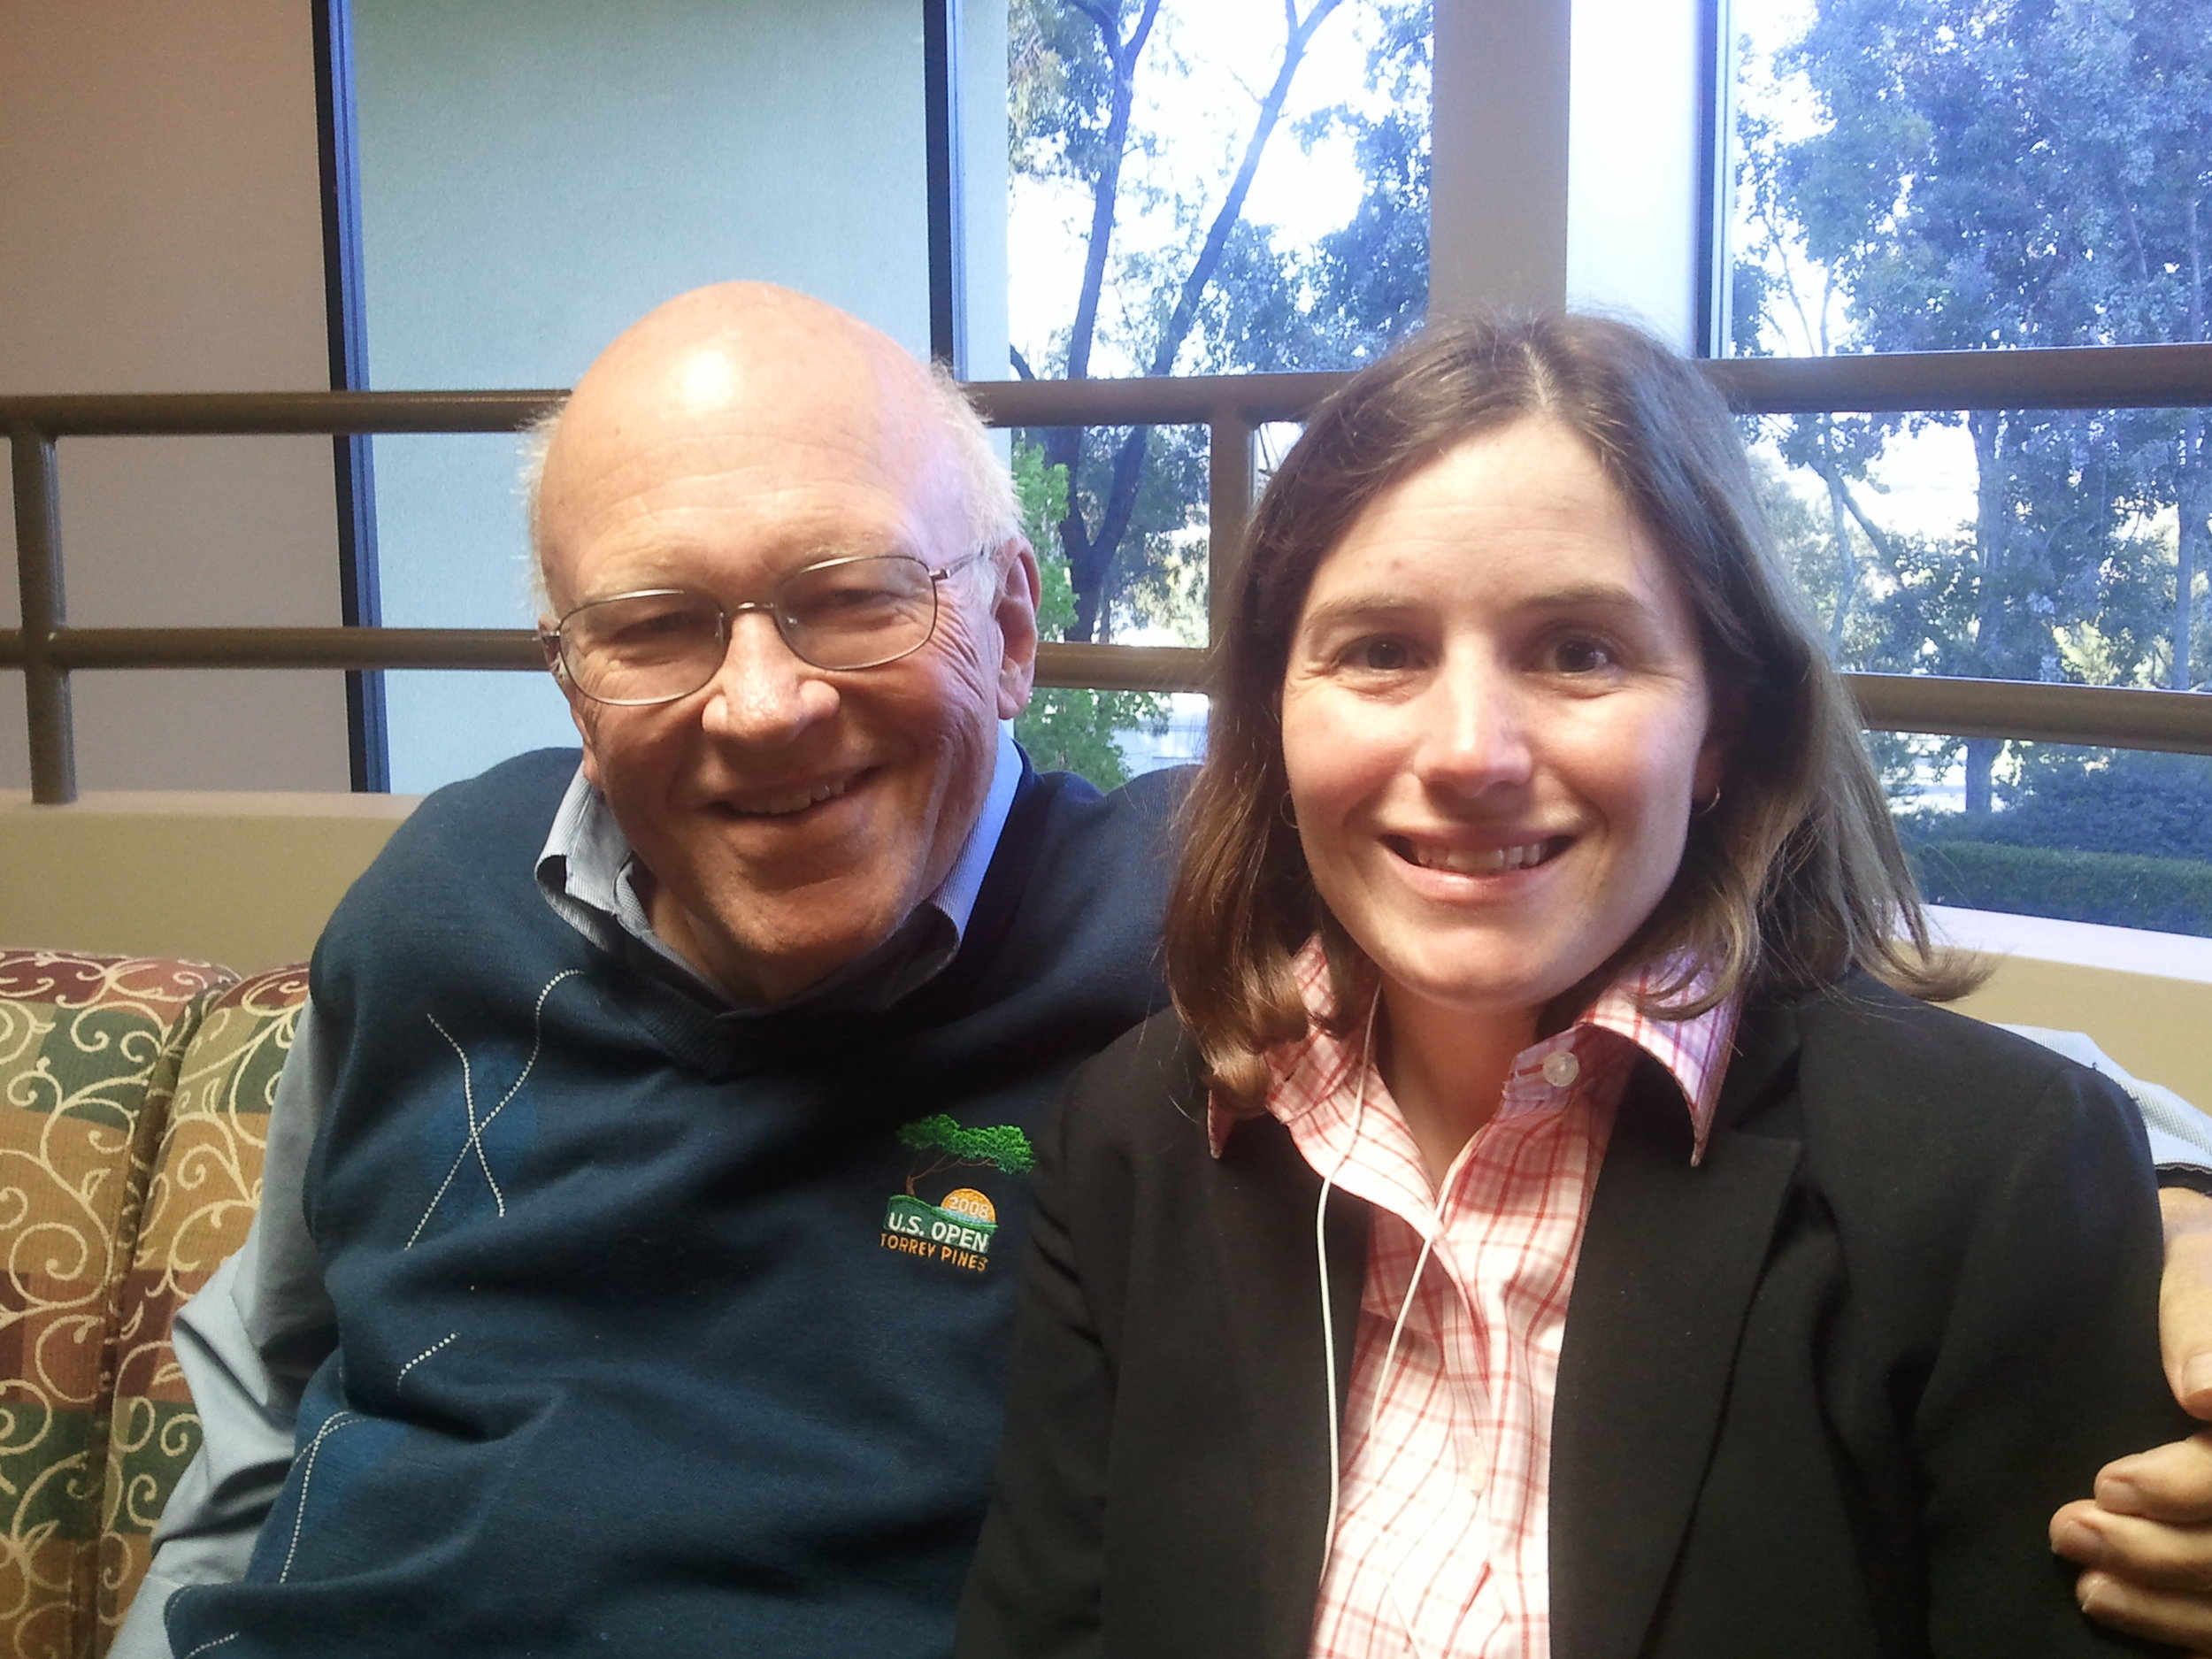 Sarah Scala and Ken Blanchard, Founder of Situational Leadership II